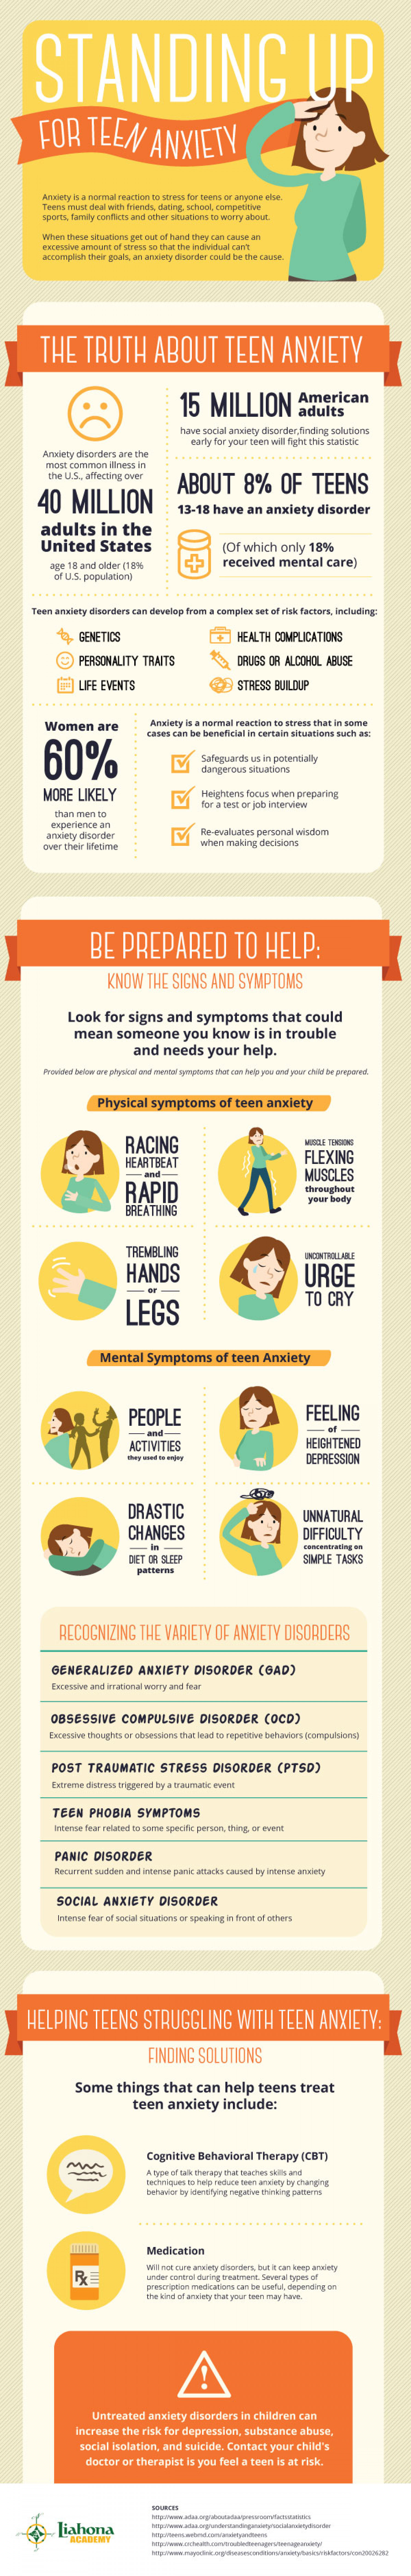 Standing Up for Teen Anxiety Infographic